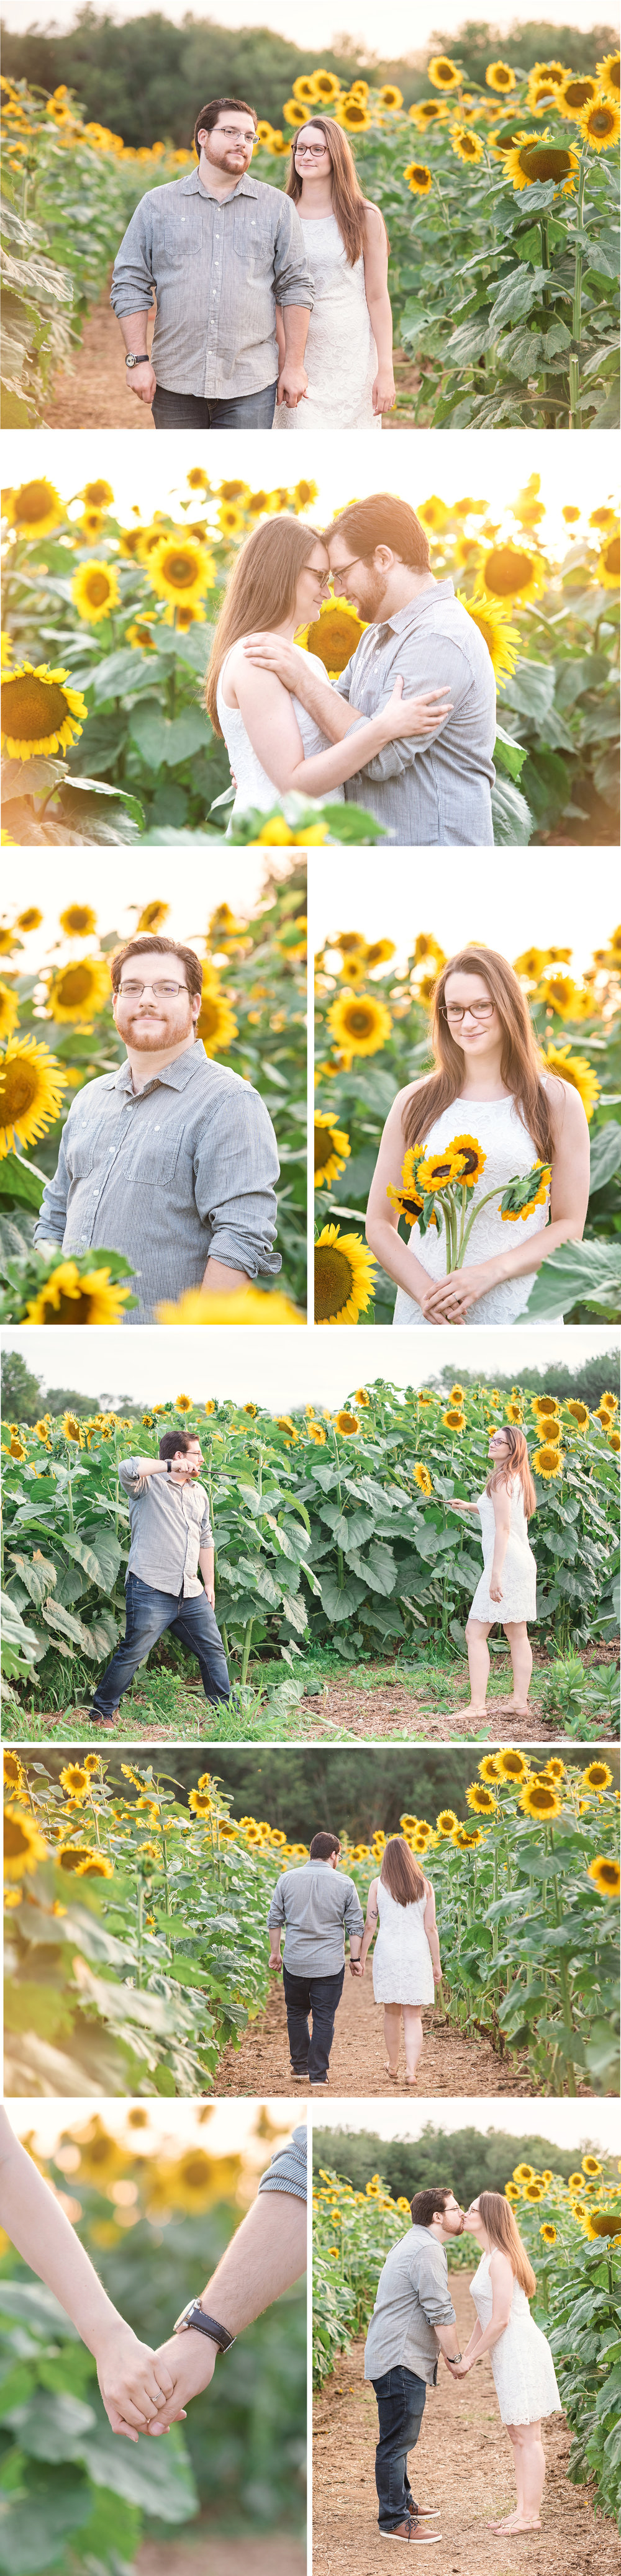 CT Sunflower Engagement Session